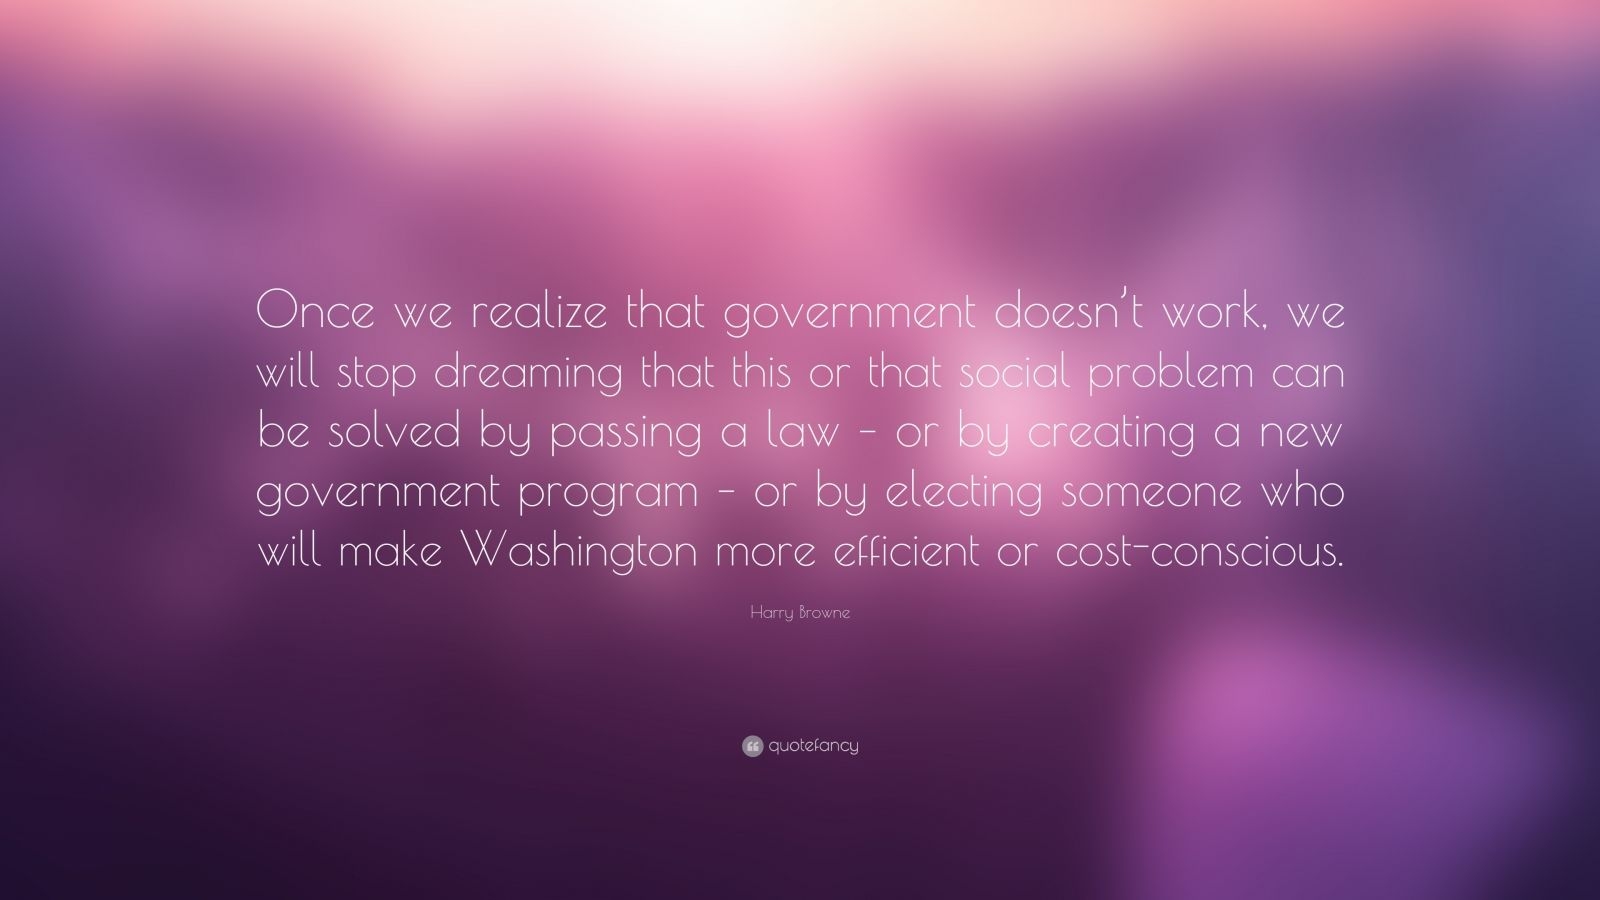 """Harry Browne Quote: """"Once we realize that government doesn't work, we will stop dreaming that this or that social problem can be solved by passing a law – or by creating a new government program – or by electing someone who will make Washington more efficient or cost-conscious."""""""